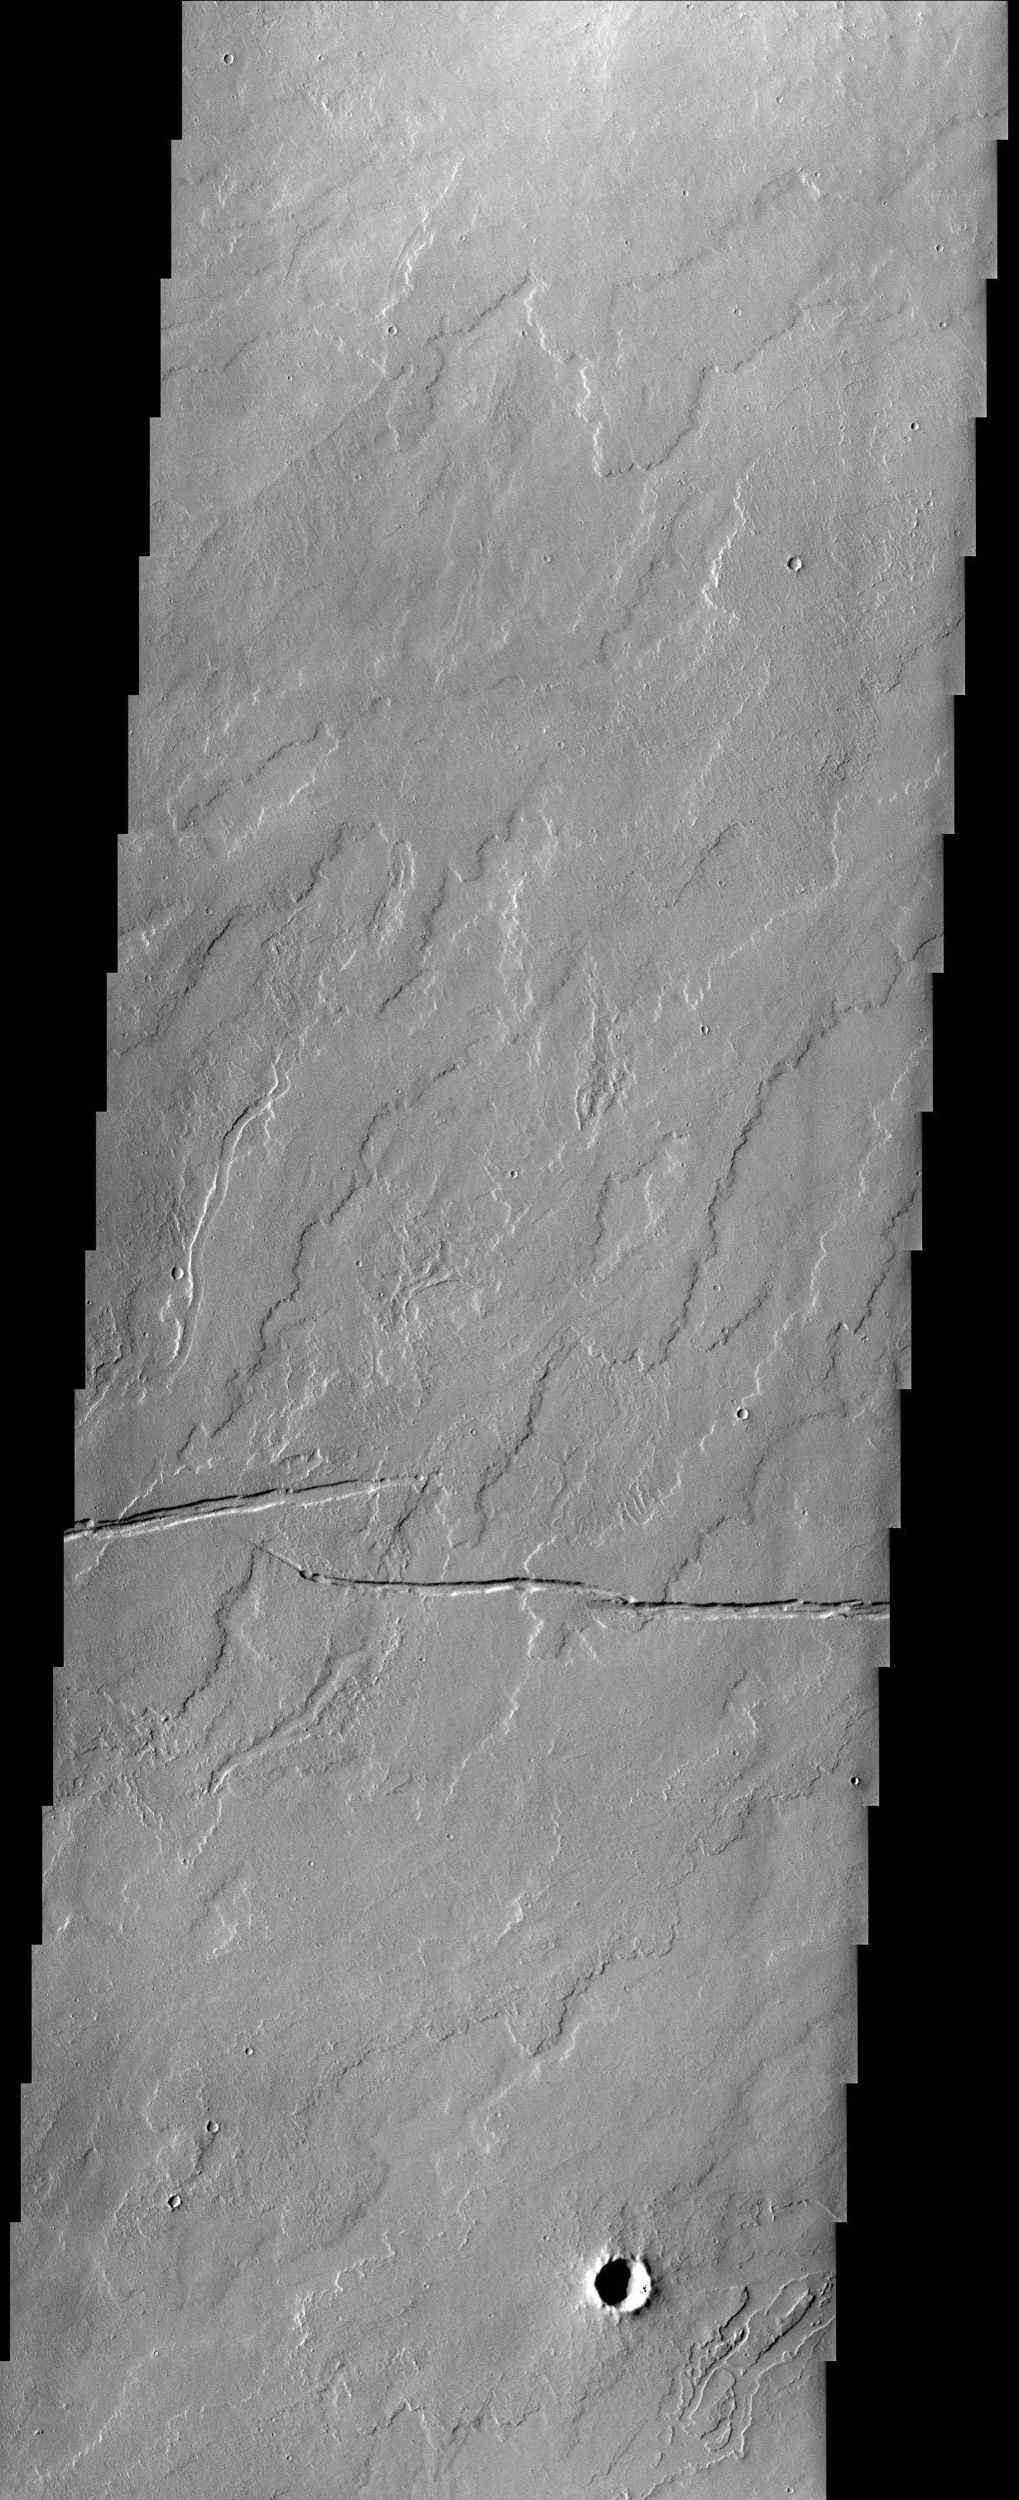 In this image from NASA's Mars Odyssey spacecraft, numerous lava flows and fossae (cracks) are visible in a region of Mars located southeast of Olympus Mons. There is also a hint that water may have possibly flowed in the region.